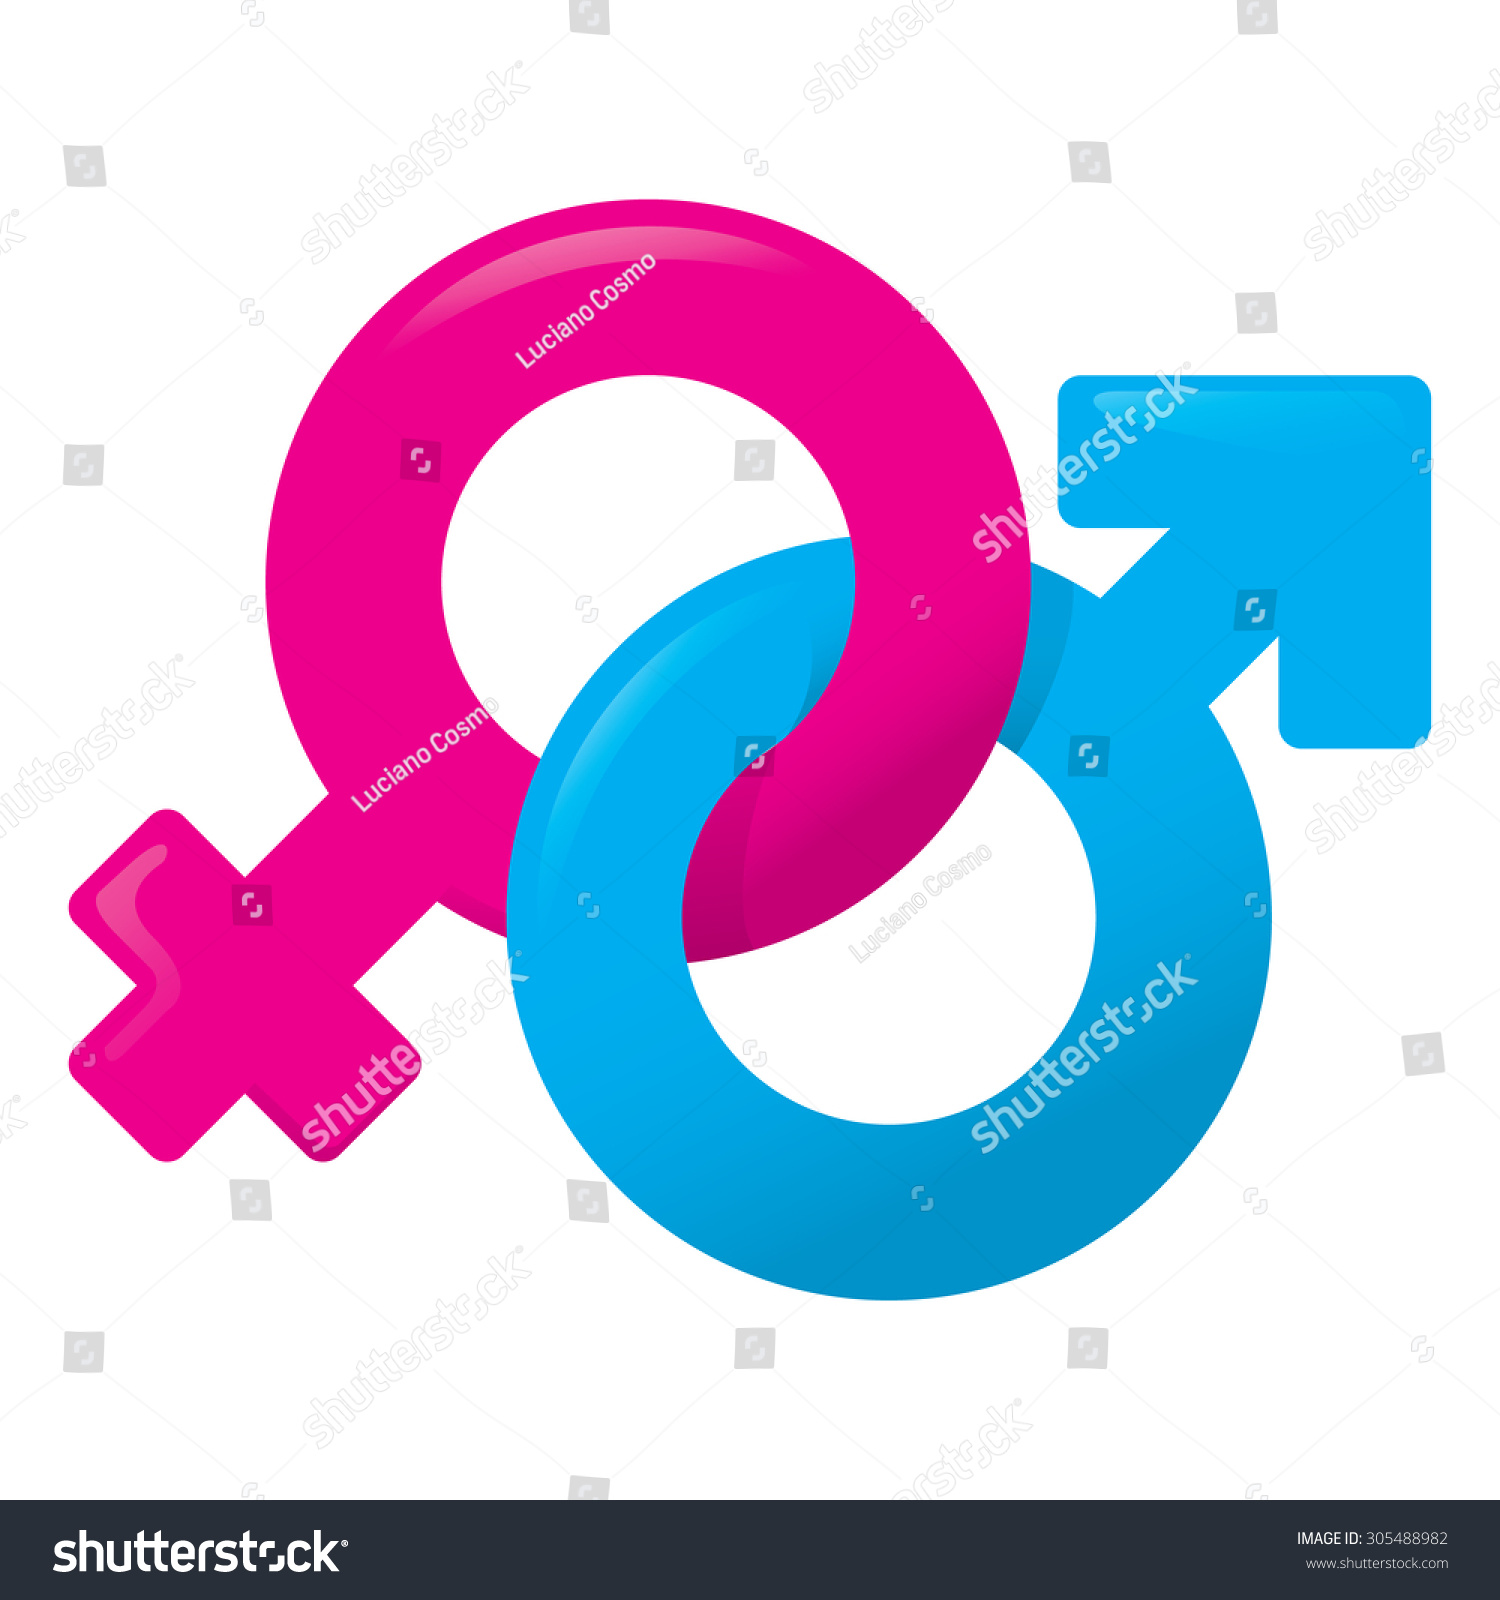 Heterosexual male symbol